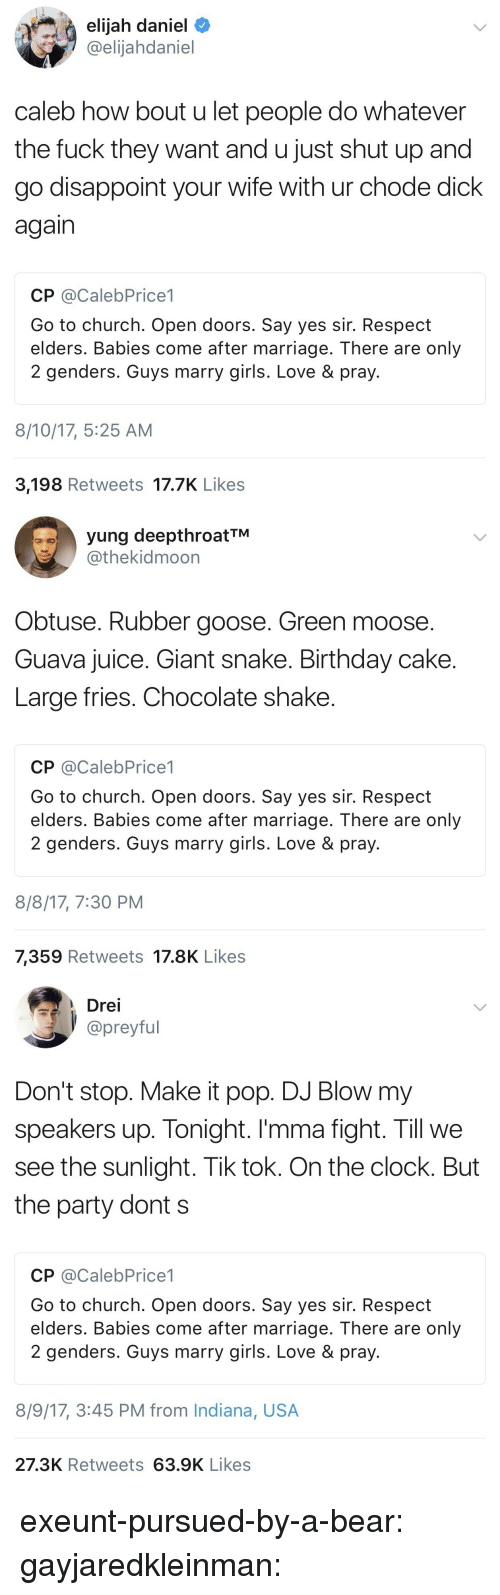 Large Fries Chocolate Shake: elijah daniel  @elijahdaniel  caleb how bout u let people do whatever  the fuck they want and u just shut up and  go disappoint your wife with ur chode dick  again  CP @CalebPrice1  Go to church. Open doors. Say yes sir. Respect  elders. Babies come after marriage. There are only  2 genders. Guys marry girls. Love & pray.  8/10/17, 5:25 AM  3,198 Retweets 17.7K Like:s   yung deepthroatTM  @thekidmoon  Obtuse. Rubber goose. Green moose.  Guava juice. Giant snake. Birthday cake  Large fries. Chocolate shake  CP @CalebPrice1  Go to church. Open doors. Say yes sir. Respect  elders. Babies come after marriage. There are only  2 genders. Guys marry girls. Love & pray  8/8/17, 7:30 PM  7,359 Retweets 17.8K Likes   Drei  preyful  Don't stop. Make it pop. DJ Blow my  speakers up. Tonight. I'mma fight. Till we  see the sunlight. Tik tok. On the clock. But  the party dont s  CP @CalebPrice1  Go to church. Open doors. Say yes sir. Respect  elders. Babies come after marriage. There are only  2 genders. Guys marry girls. Love& pray  8/9/17, 3:45 PM from Indiana, USA  27.3K Retweets 63.9K Likes exeunt-pursued-by-a-bear: gayjaredkleinman: